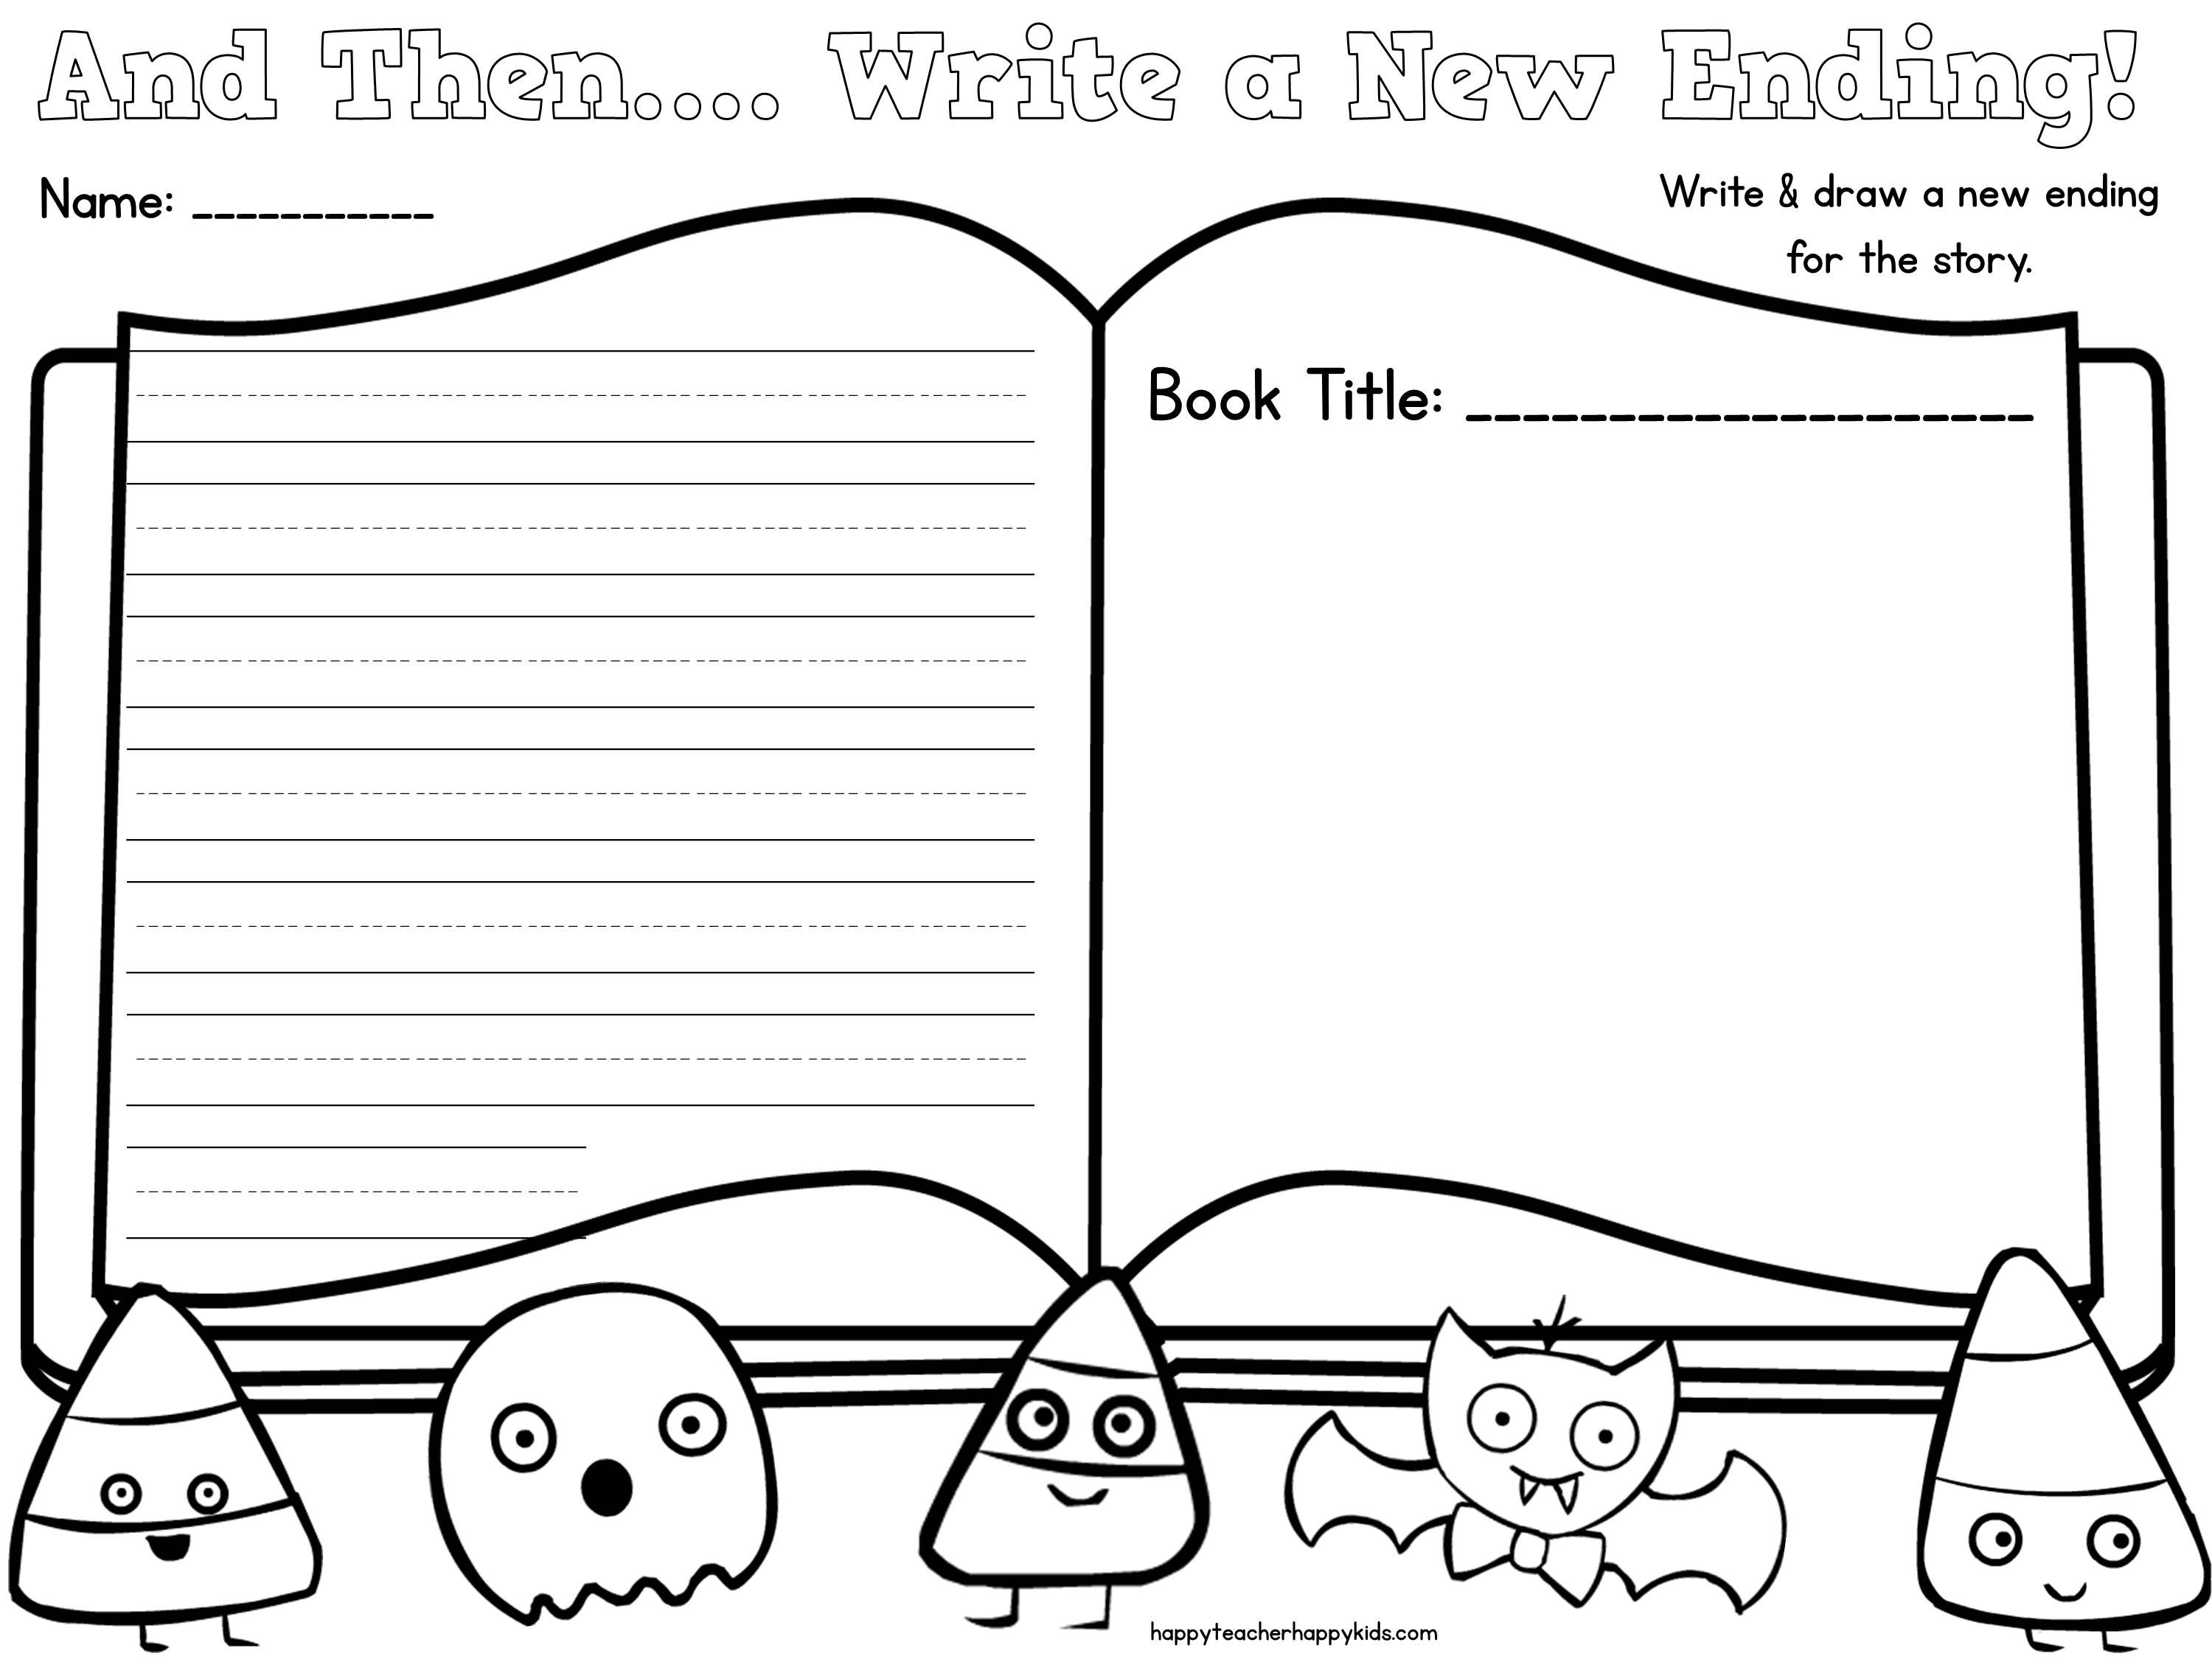 Write A New Ending For A Spooky Story Reading Comprehension Activities To Use With Any Book